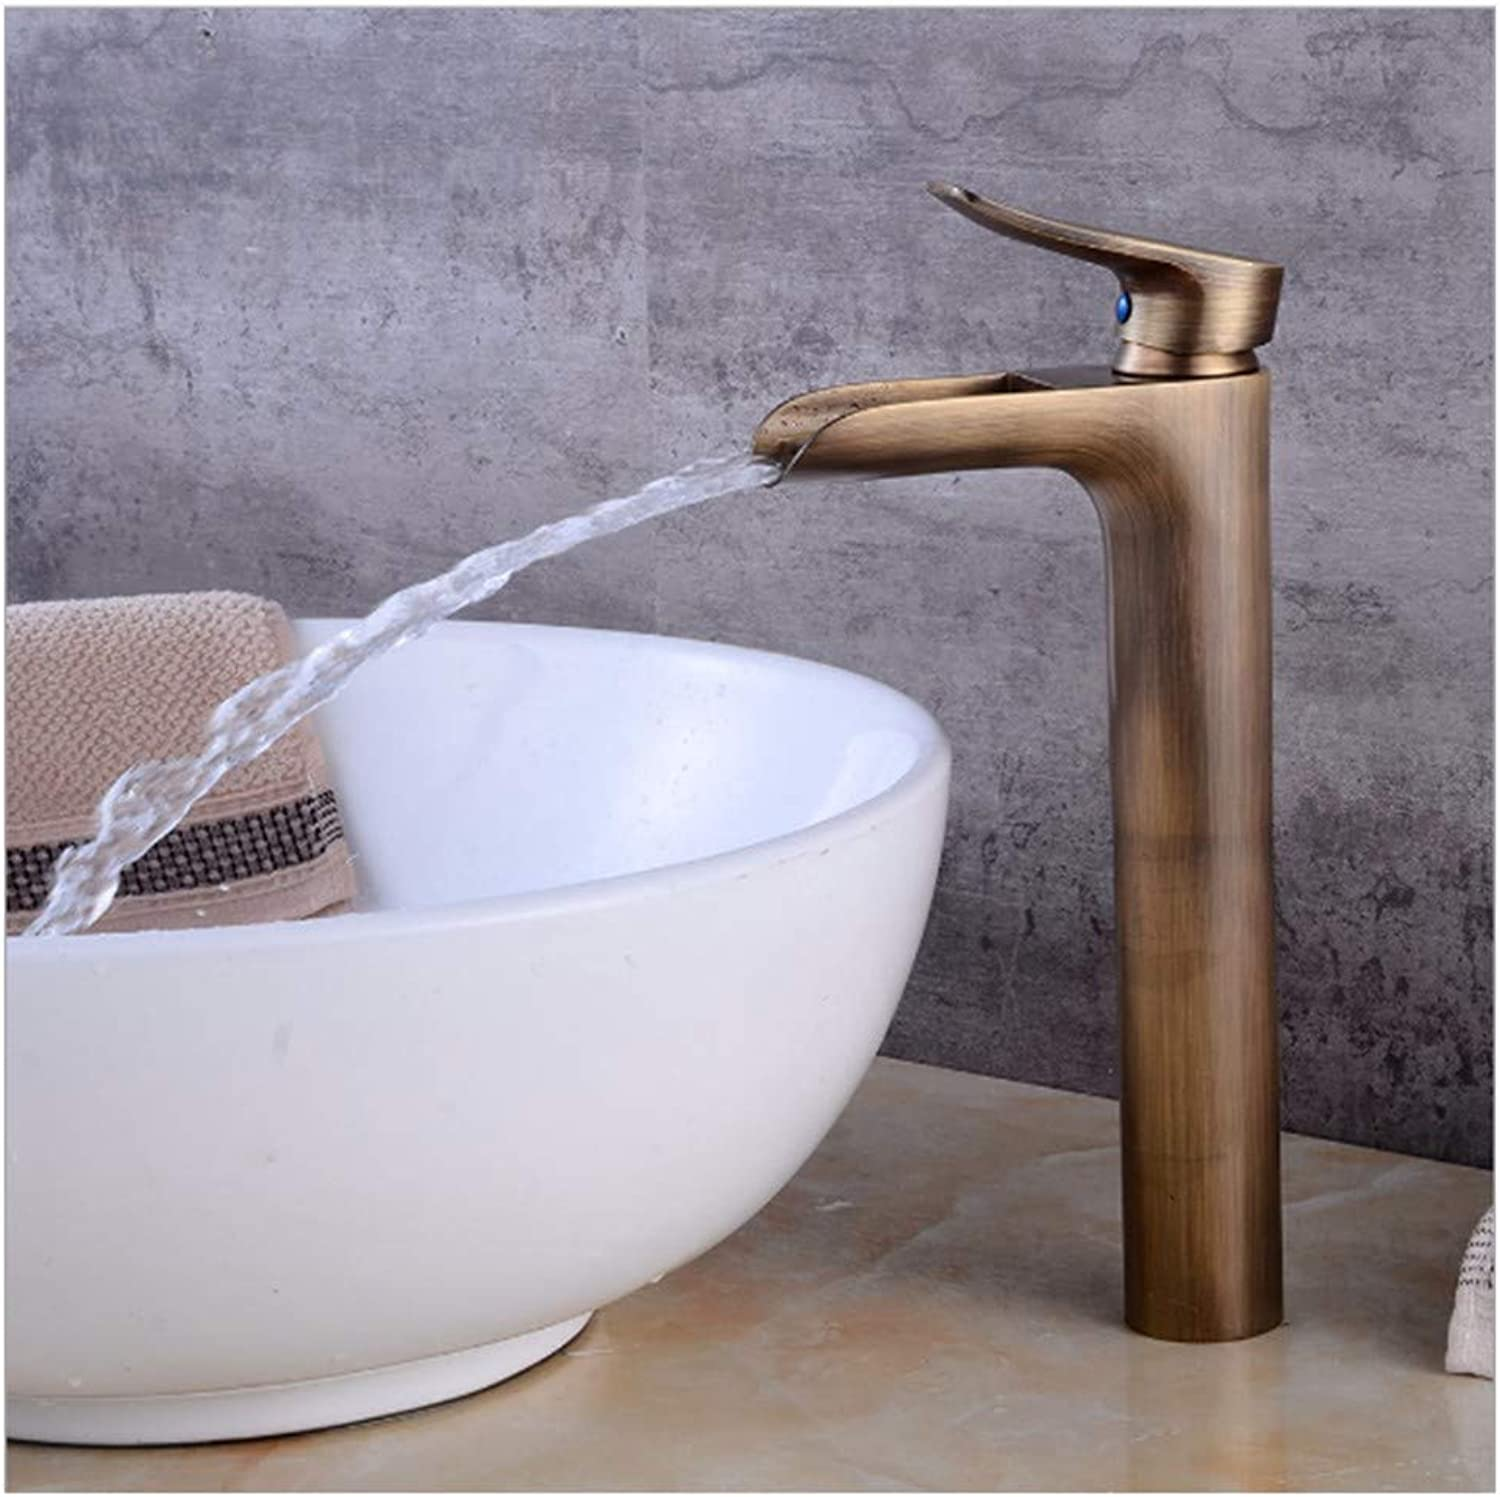 Lenrtu European Style Retro Drawing Faucet With Waterfall Pure Vintage Brass Cylindrical Water Tap Washbasin Sink 1 Lever Handle Single Spout Mixer Tap For Bathroom